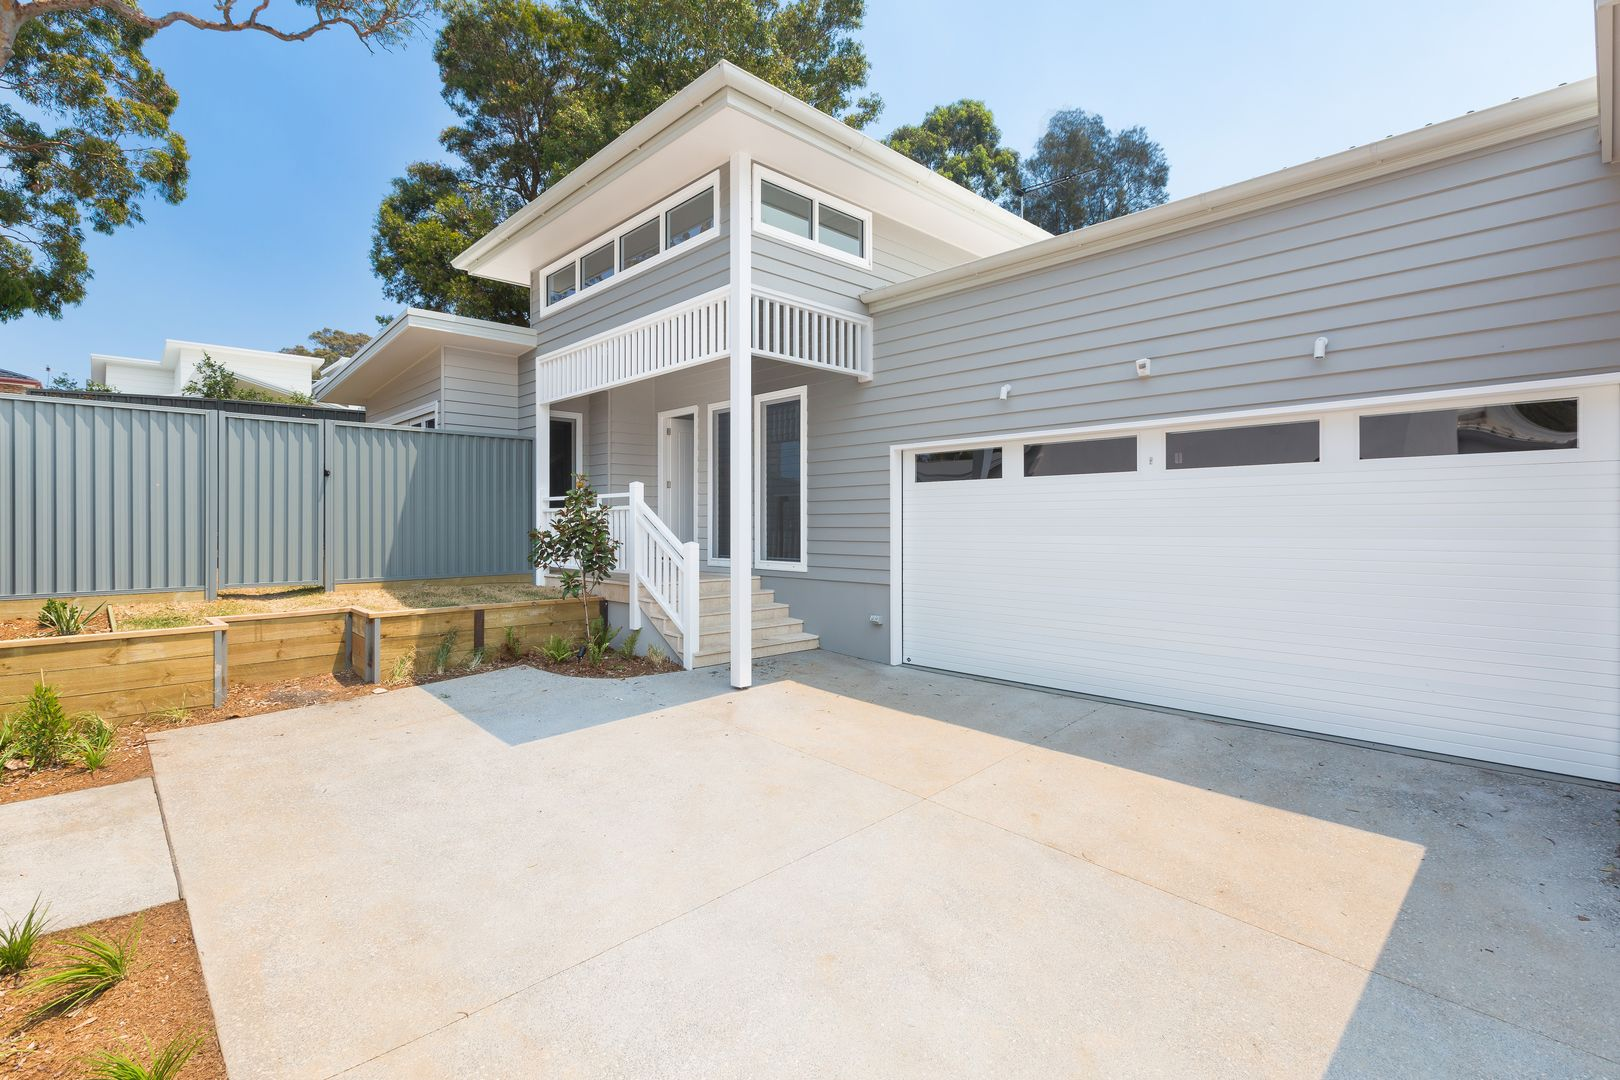 3/6 Dudley Avenue, Caringbah South NSW 2229, Image 0